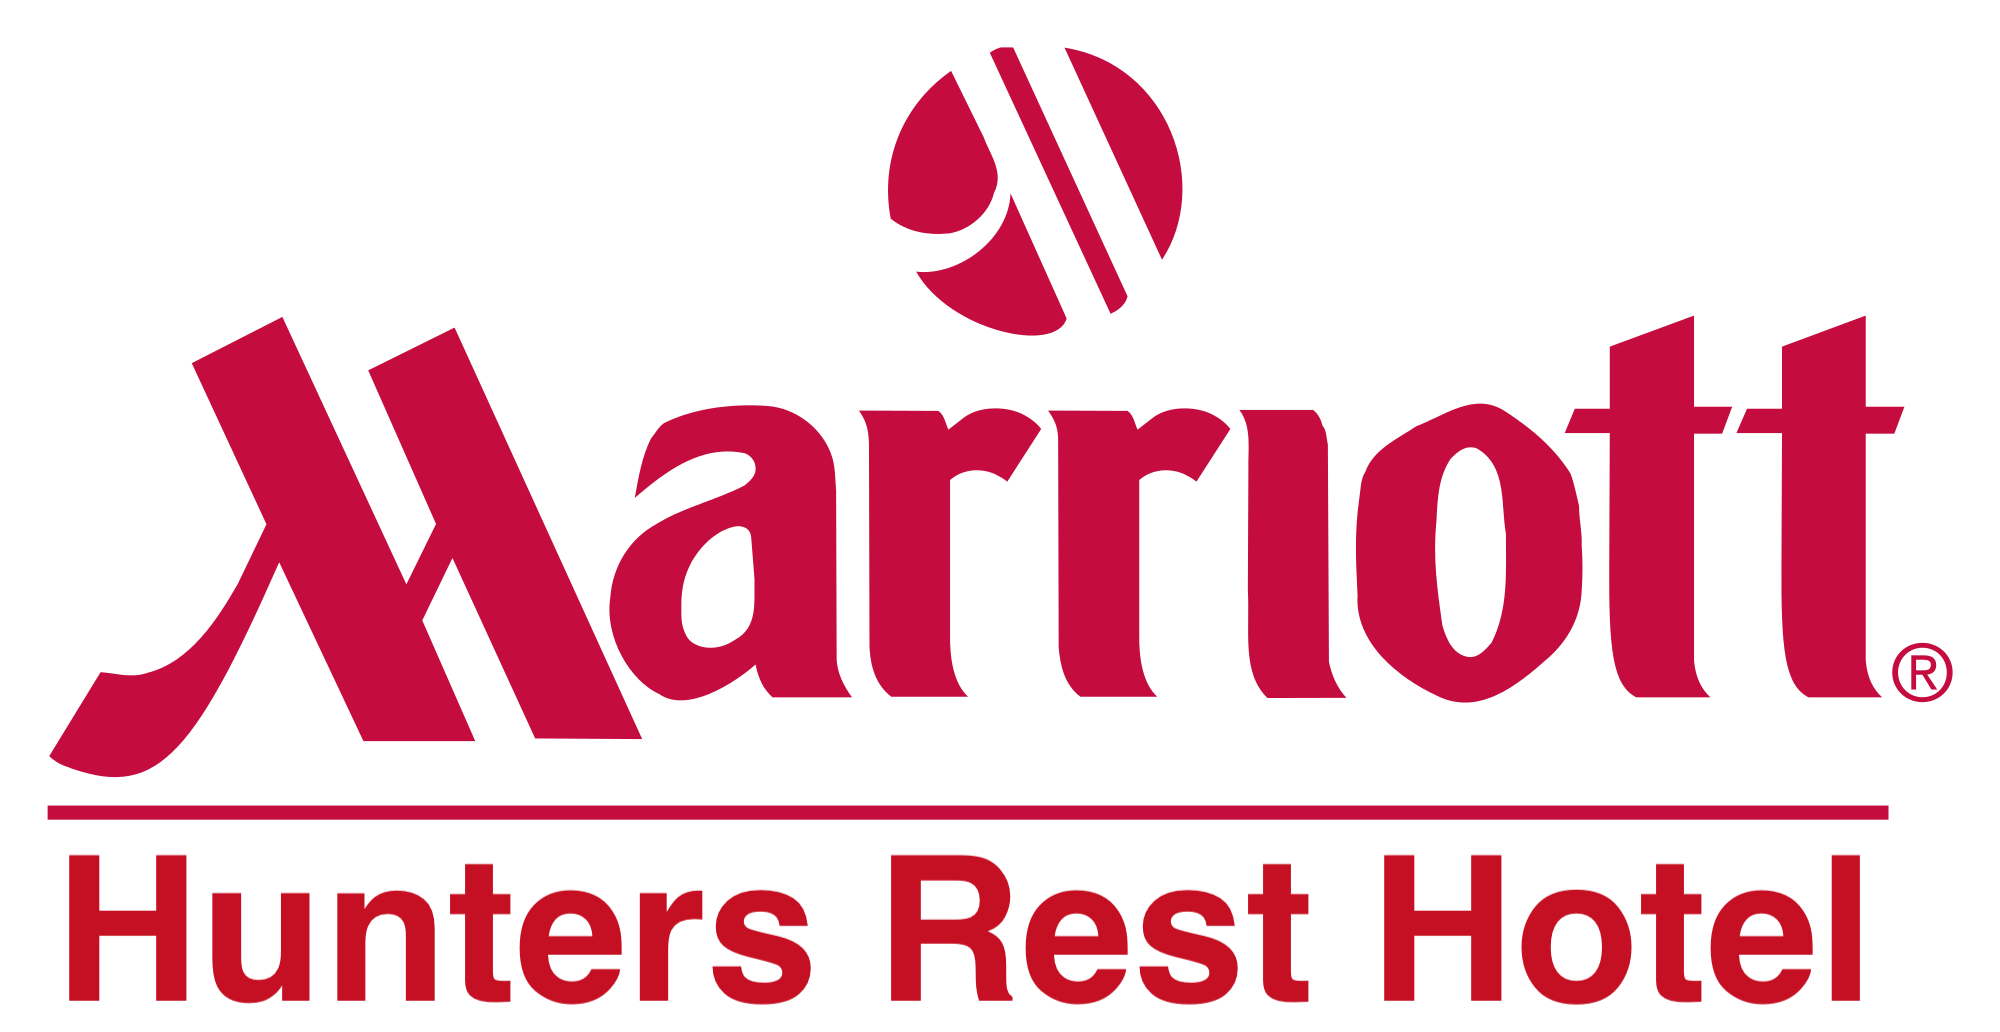 marriott .png